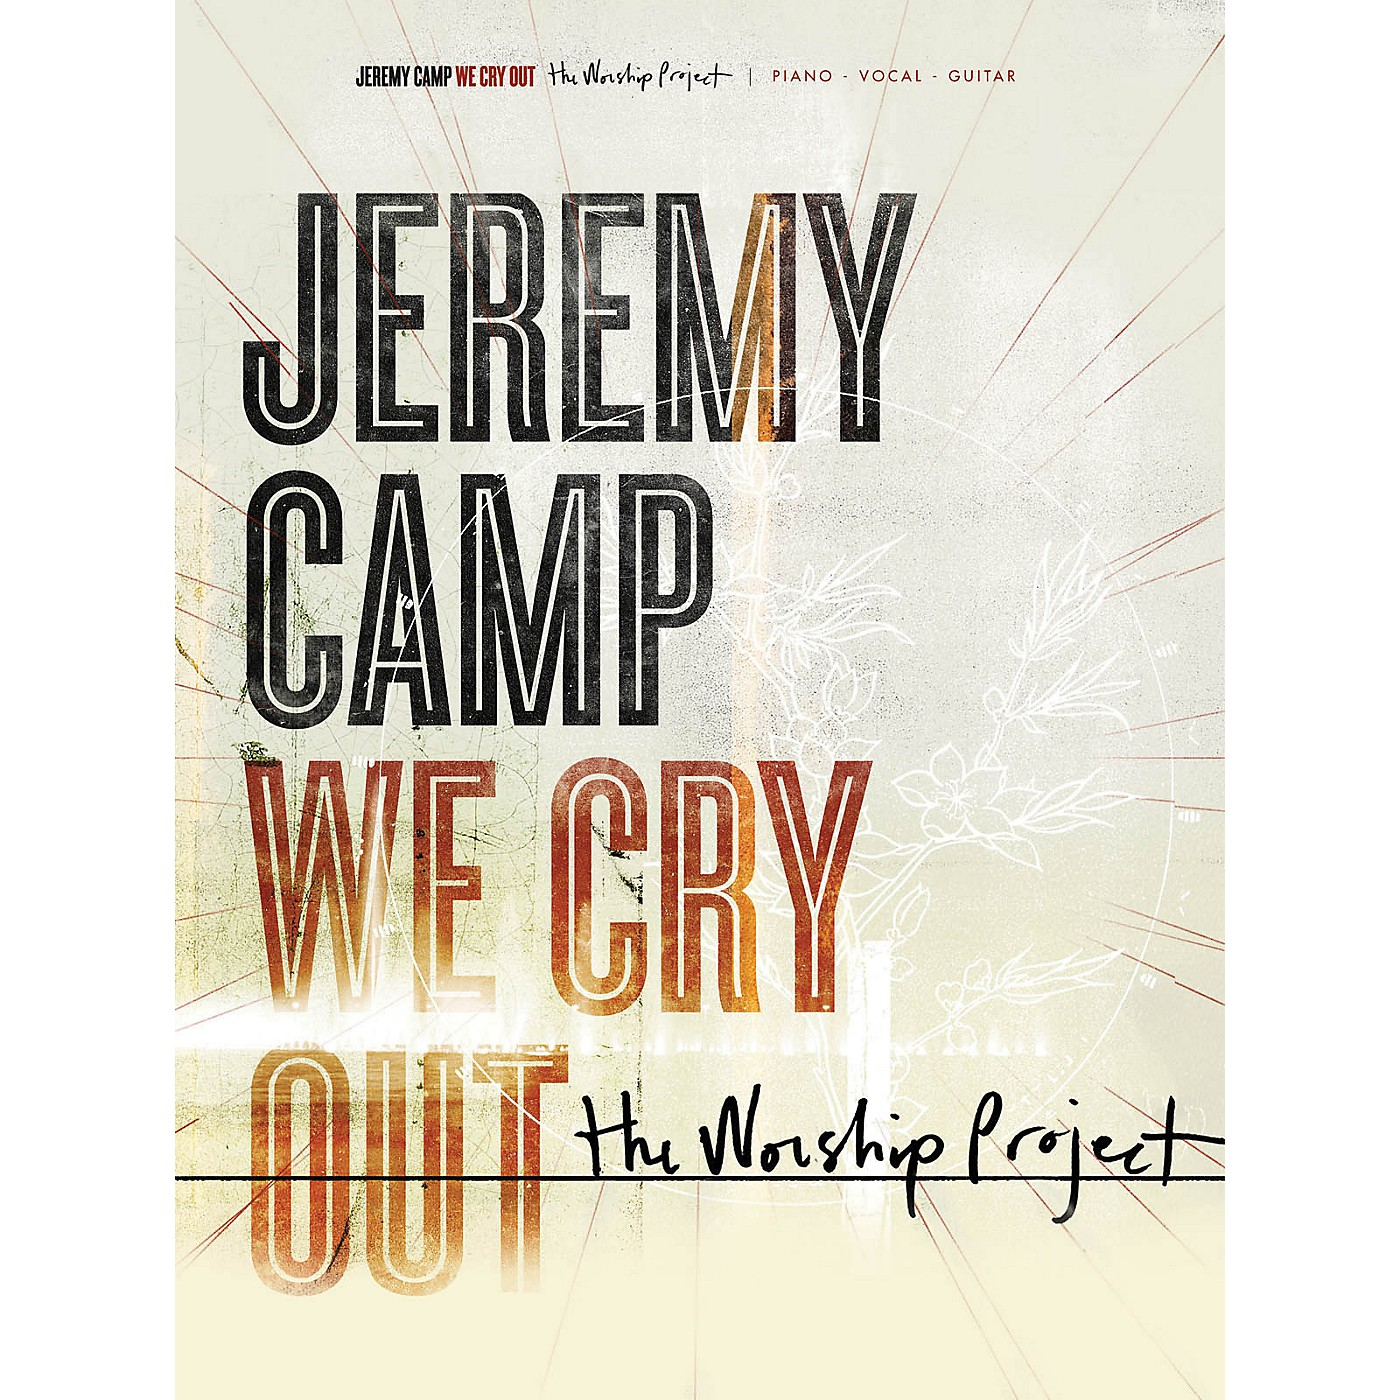 Hal Leonard Jeremy Camp - We Cry Out: The Worship Project PVG Songbook thumbnail